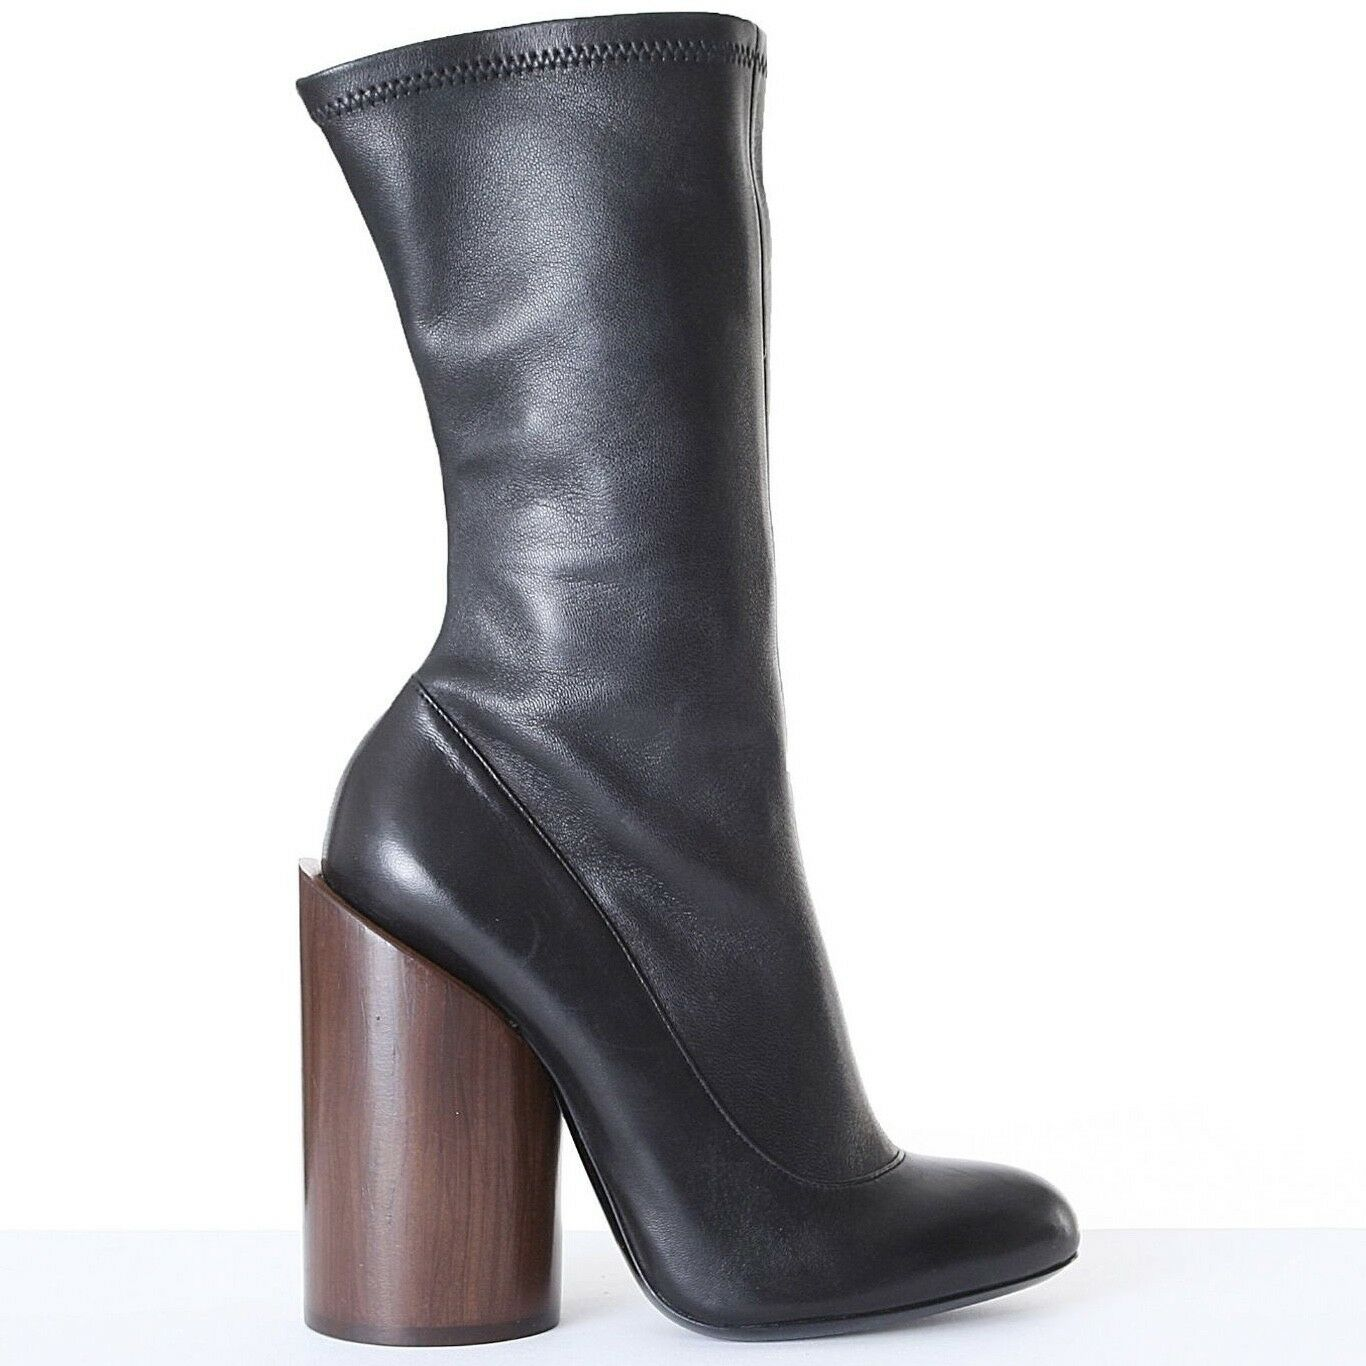 new GIVENCHY Runway Prive black leather sock wood cylinder heel boots EU37 US7